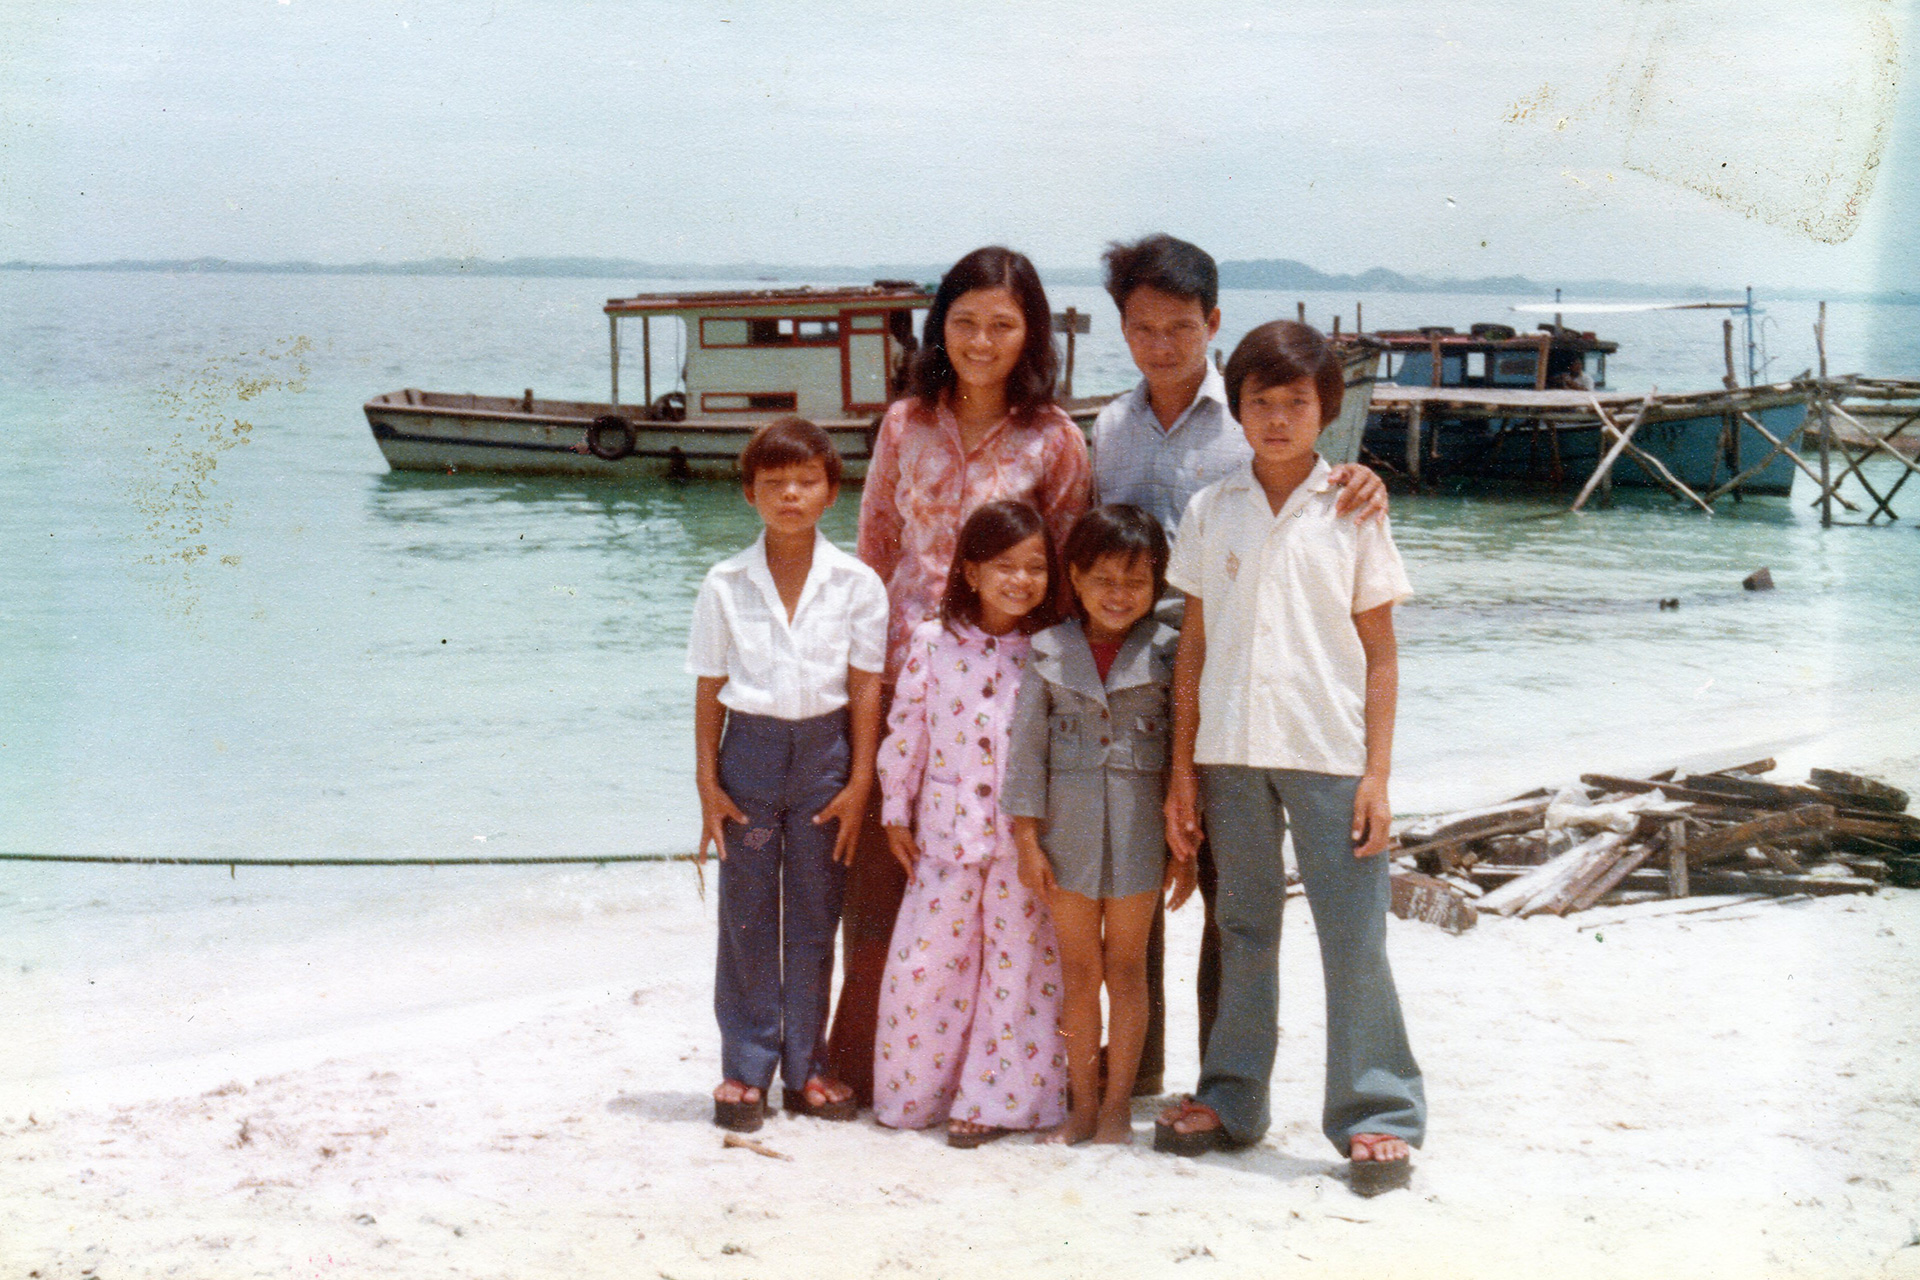 Karina with her family in Vietnam.